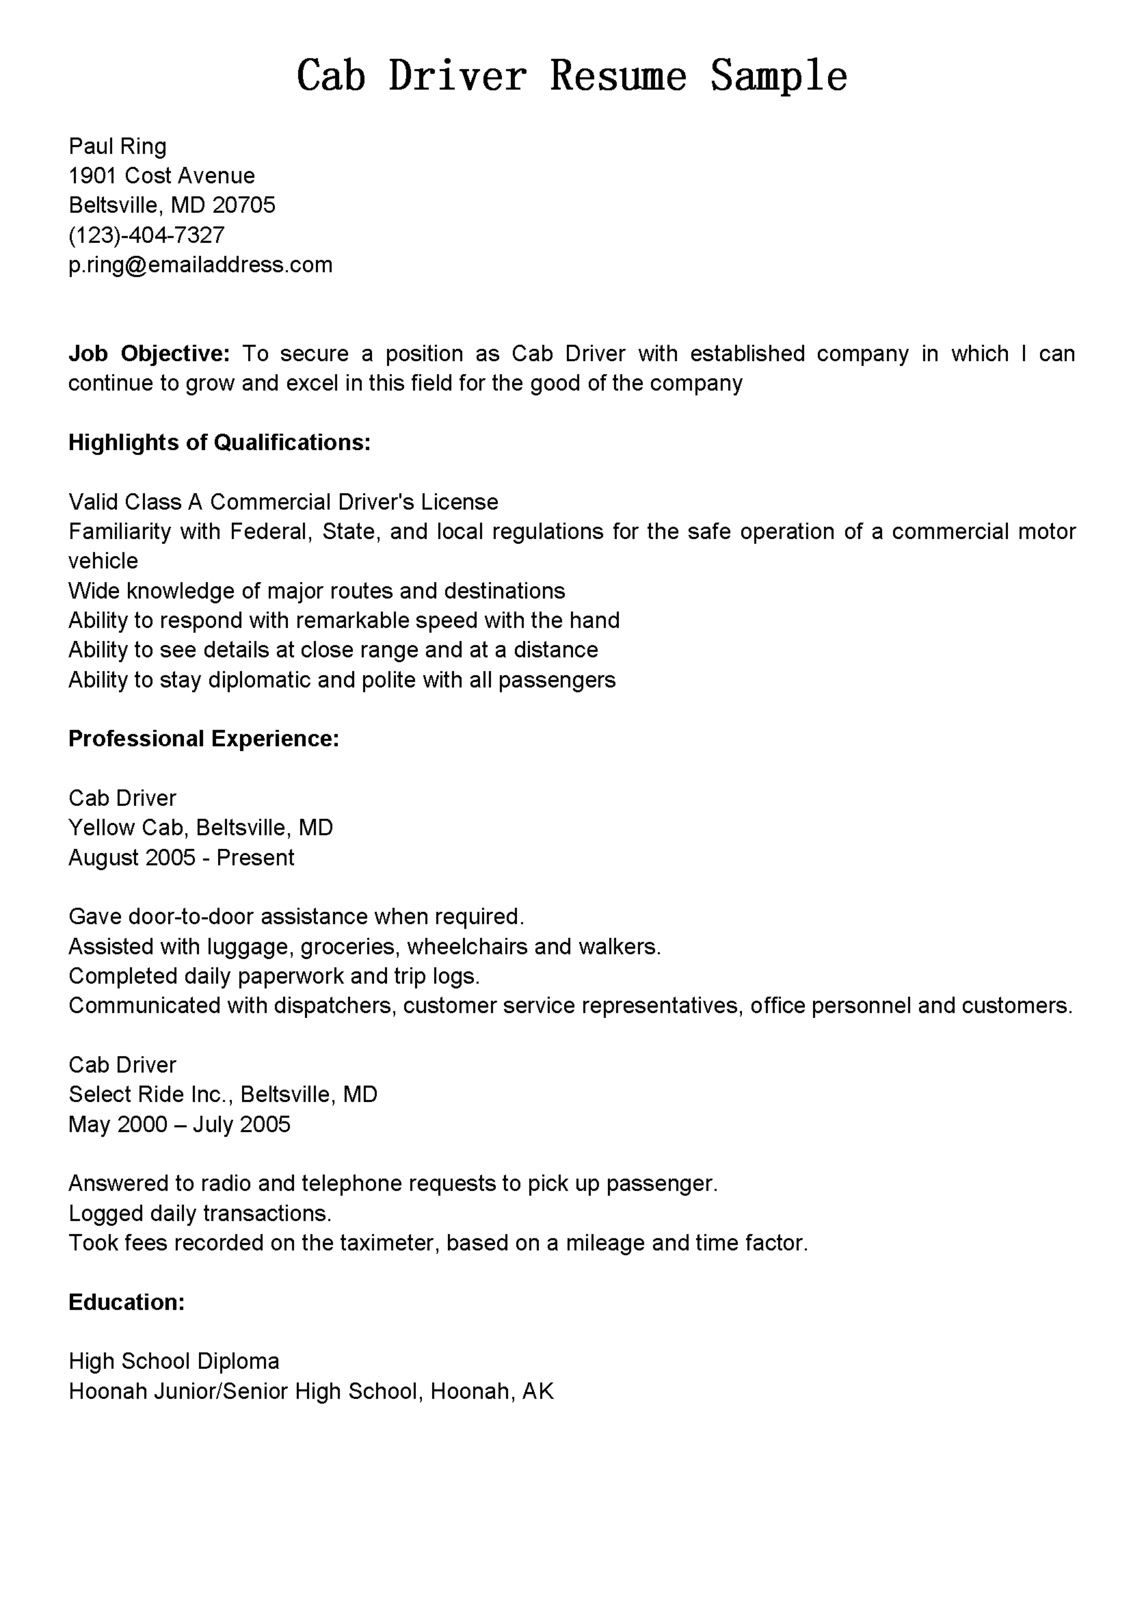 taxi driver resume sample resumesdesign job for office manager objective aerospace Resume Resume For Driver Job